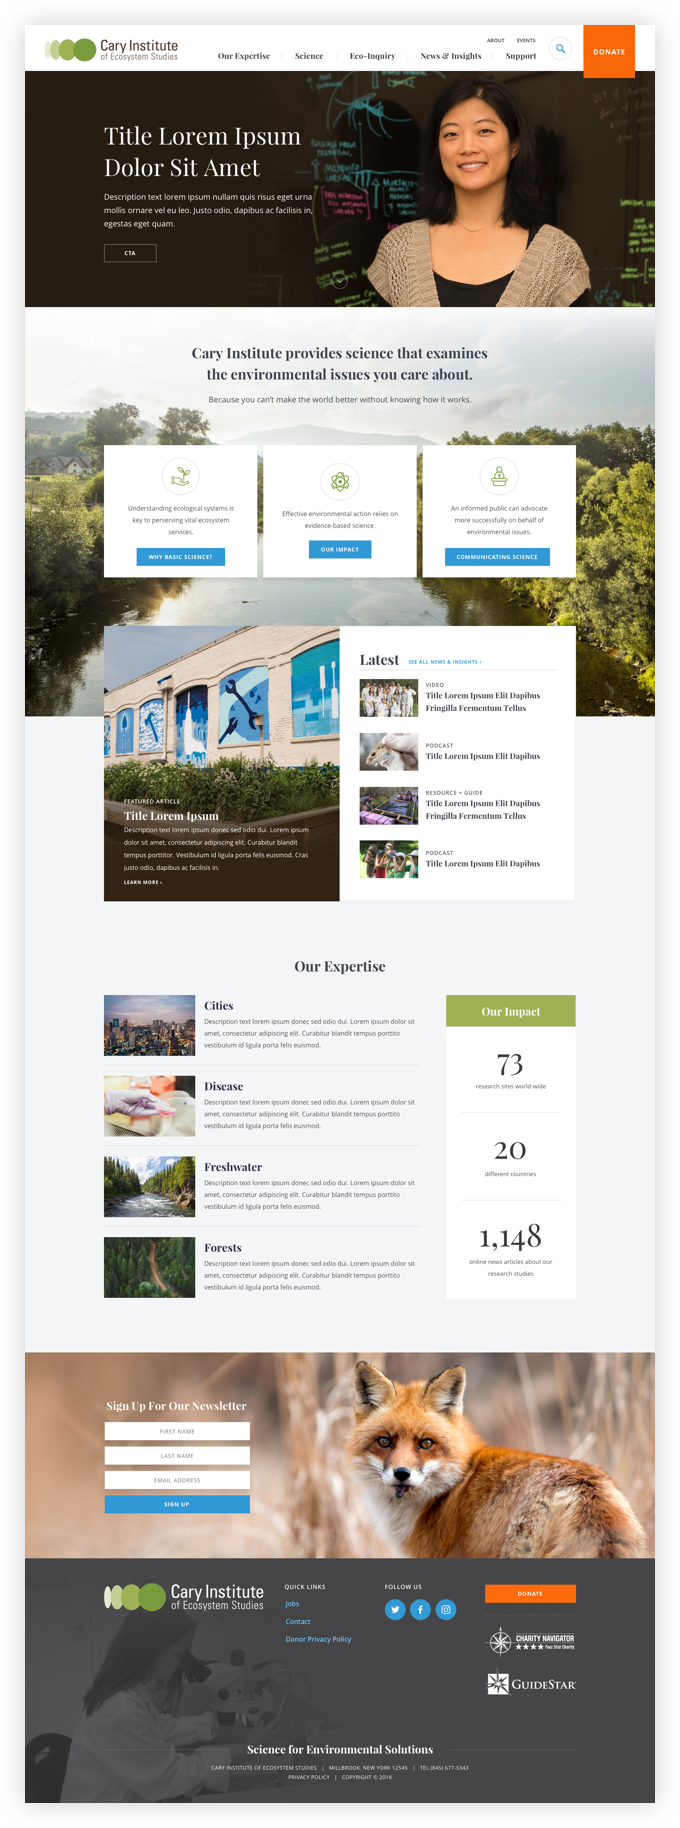 Design comps for Cary's full homepage.